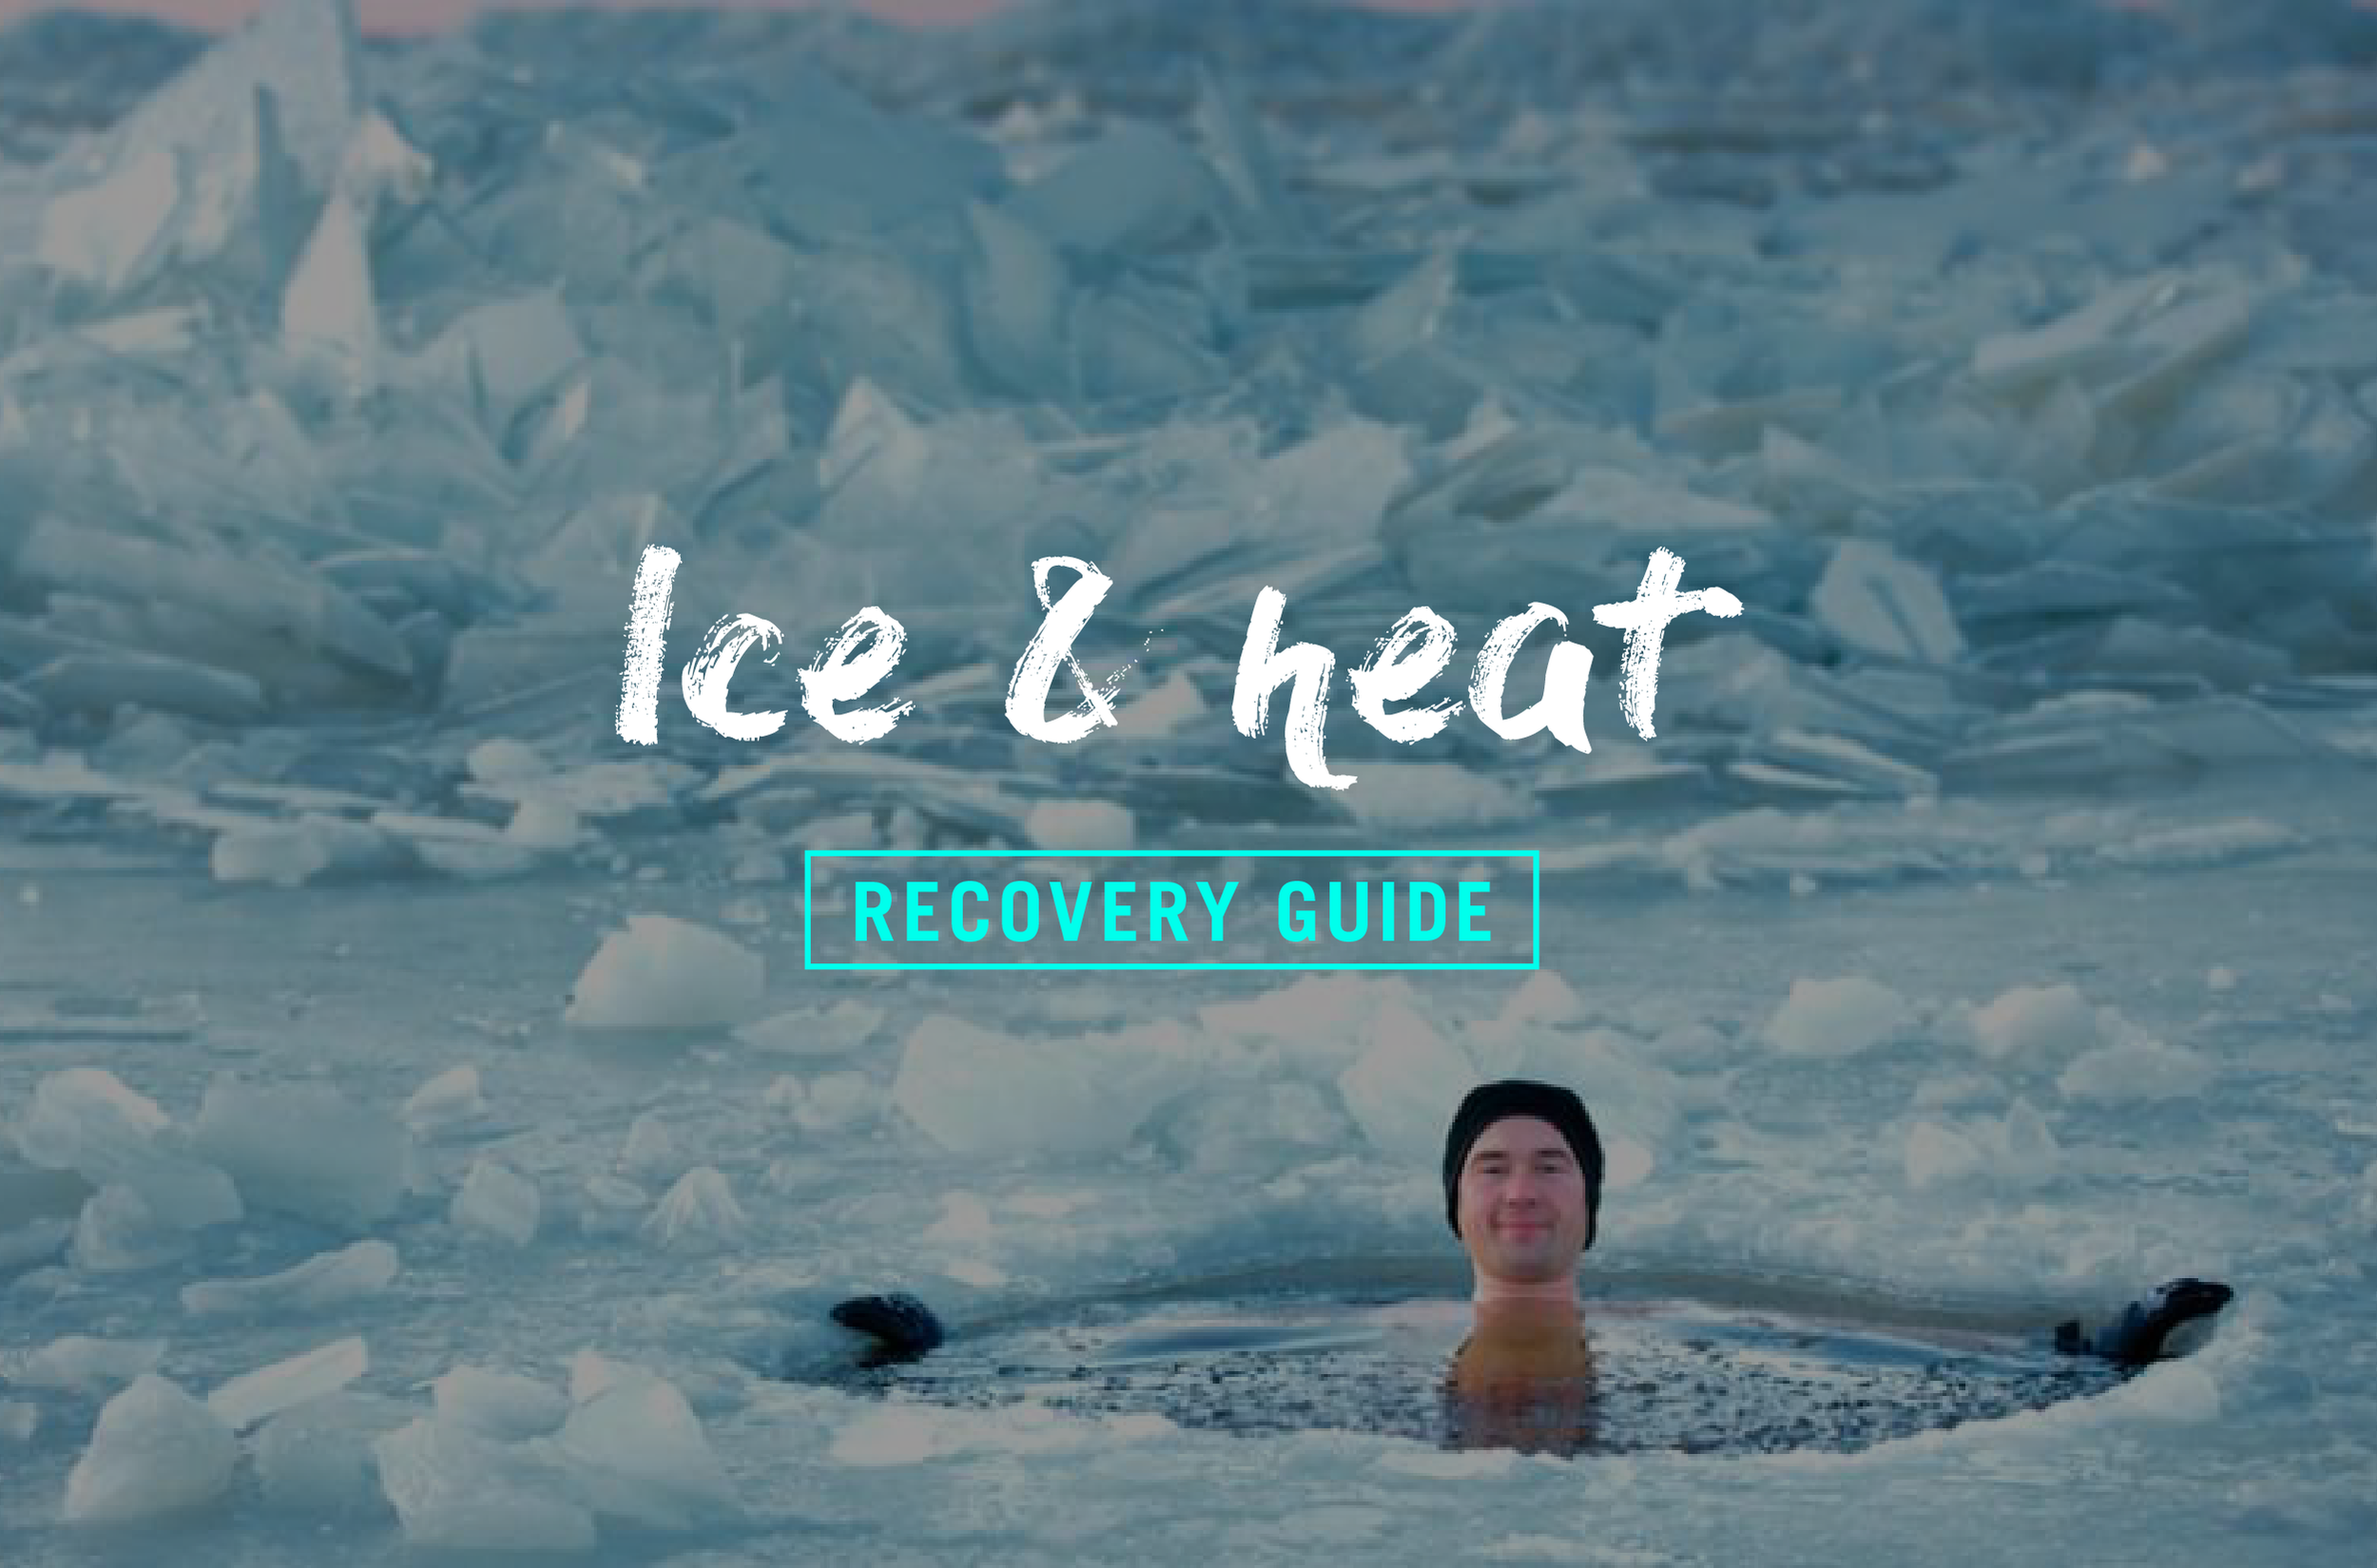 heat and ice treatment guide